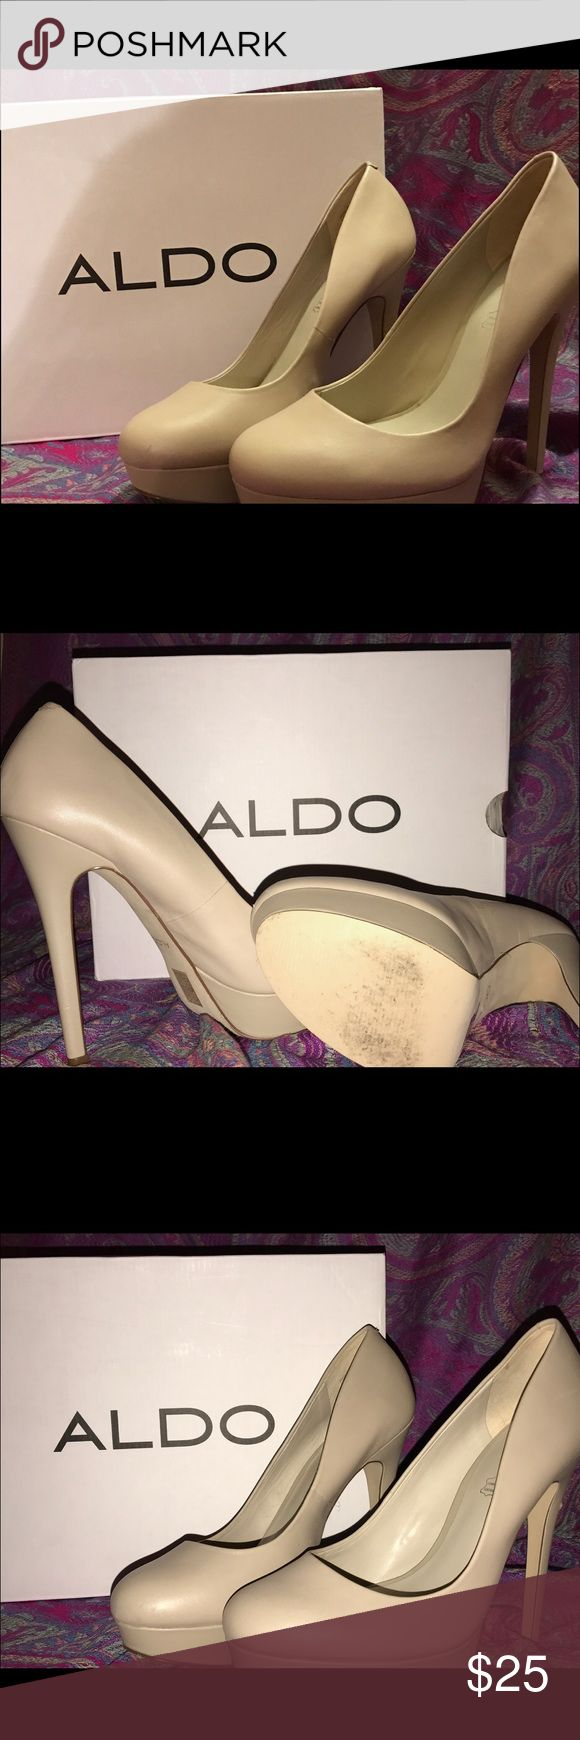 Aldo cream high heels Cream high heels. Really comfortable to walk in and only worn once for senior pictures. Aldo Shoes Heels